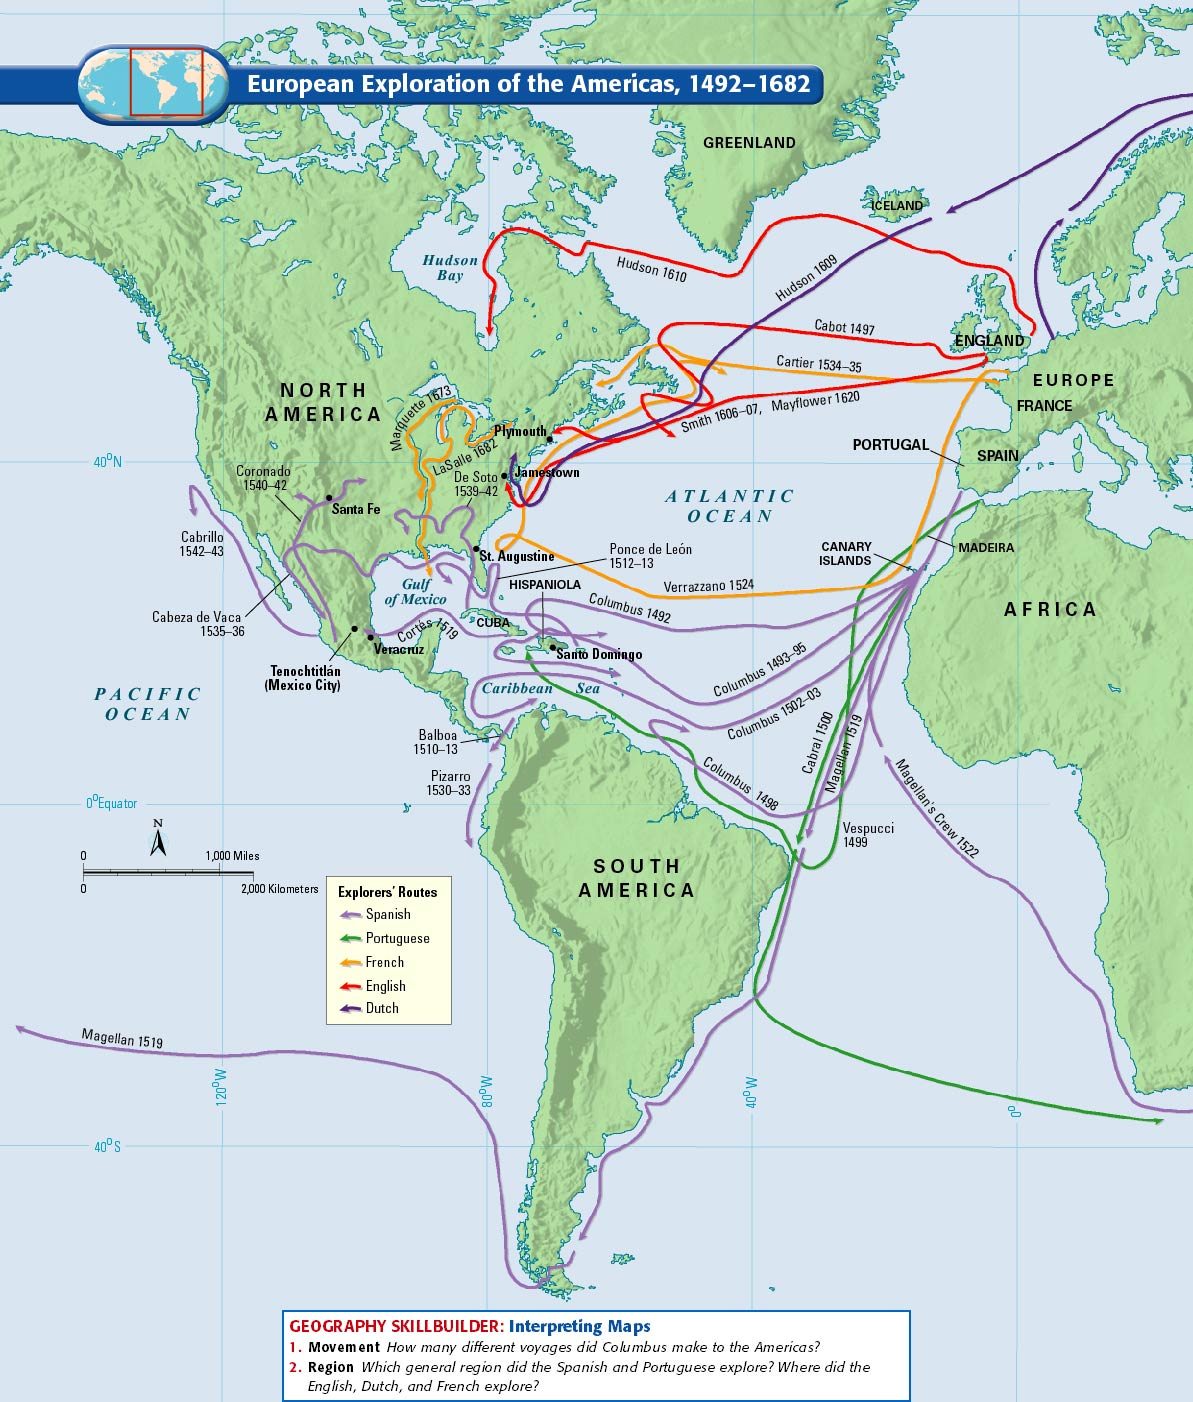 four west european explores that traveled to the new world The history of the european seaborne slave trade with africa goes back 50 years prior to columbus' initial voyage to the americas it began with the portuguese, who went to west africa in search.